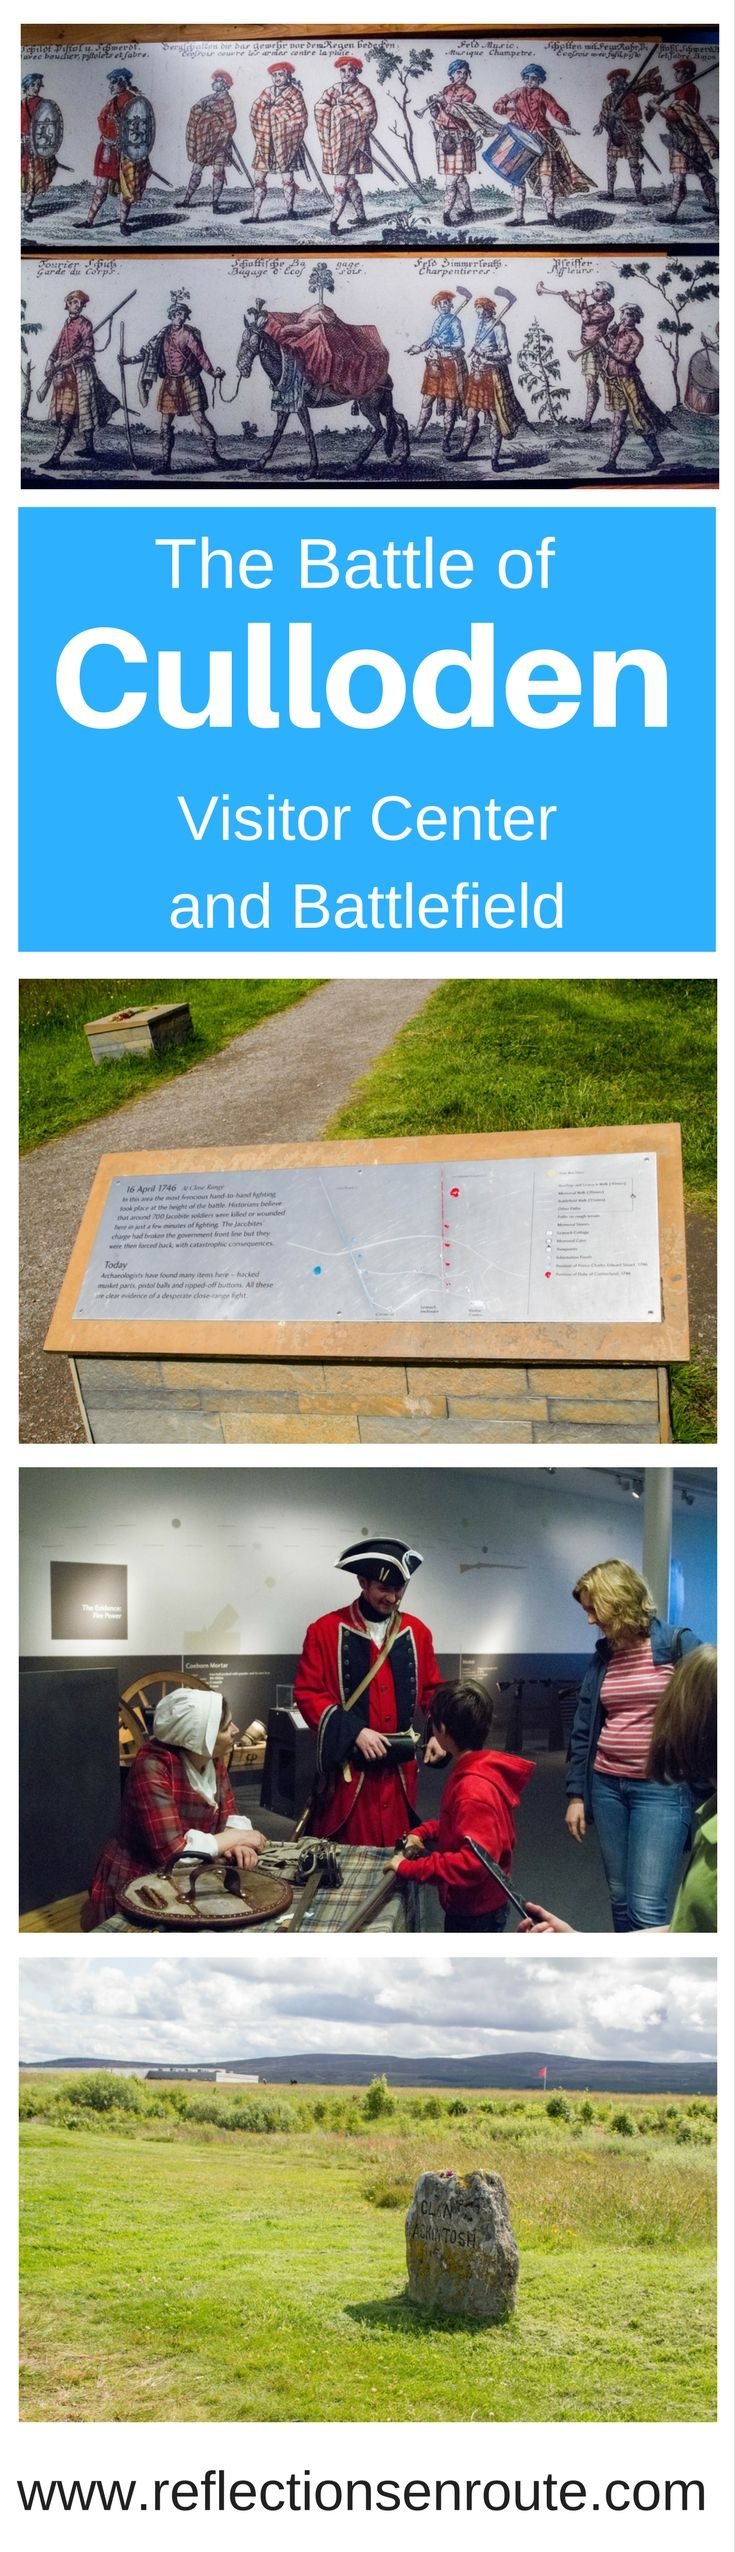 The Culloden Battlefield and Culloden Visitor Center will astound you with vivid, hands-on history. Glimpse into one of the bloodiest battles in Scotland. Click here to learn more. #scotland #militaryhistory #Scottishclans #daytrip #museum